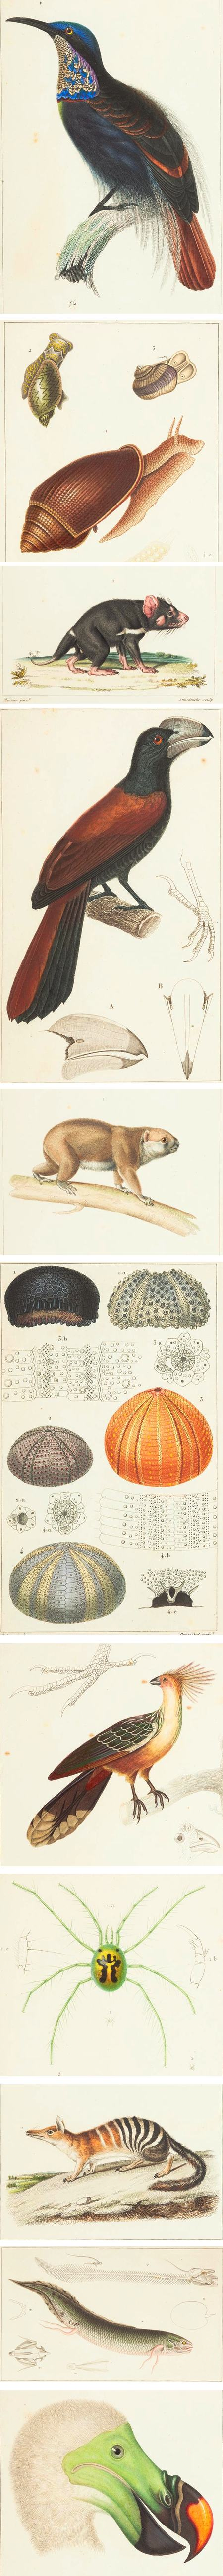 Atlas de Zoologie: ou collection de 100 planches (Zoological atlas or collection of 100 plates)